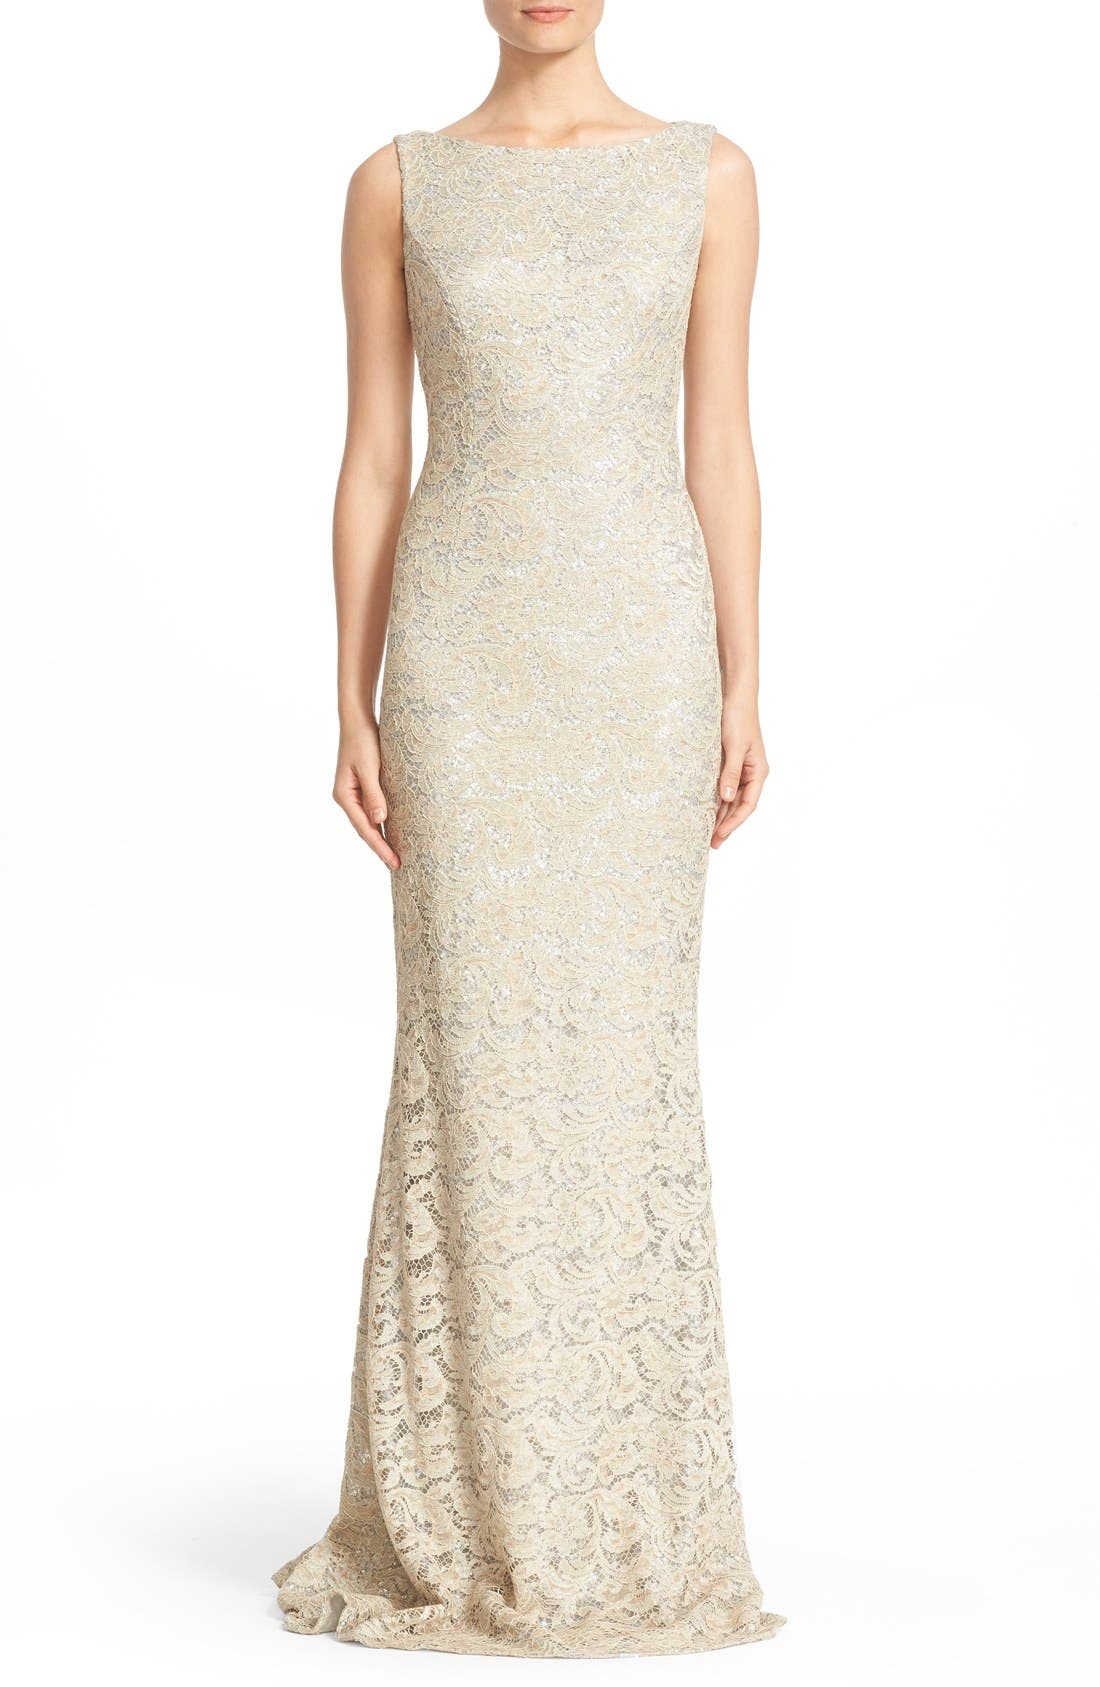 Alternate Image 1 Selected - Carmen Marc Valvo Couture Sequin Lace Column Gown